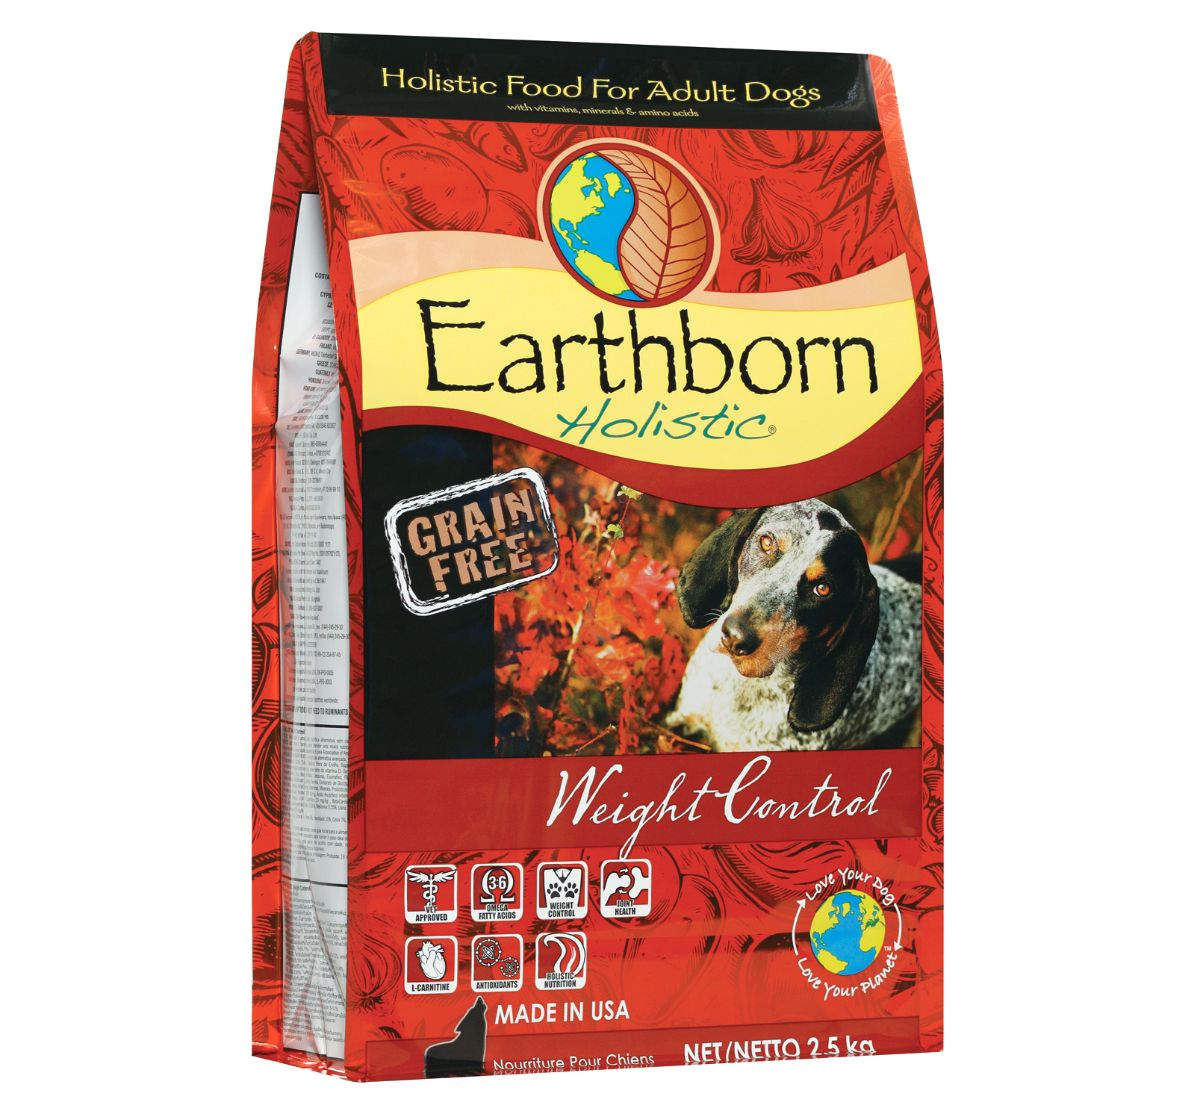 Earthborn Holistic Weight Control Grain-Free Dry Dog Food - 2.5 kg